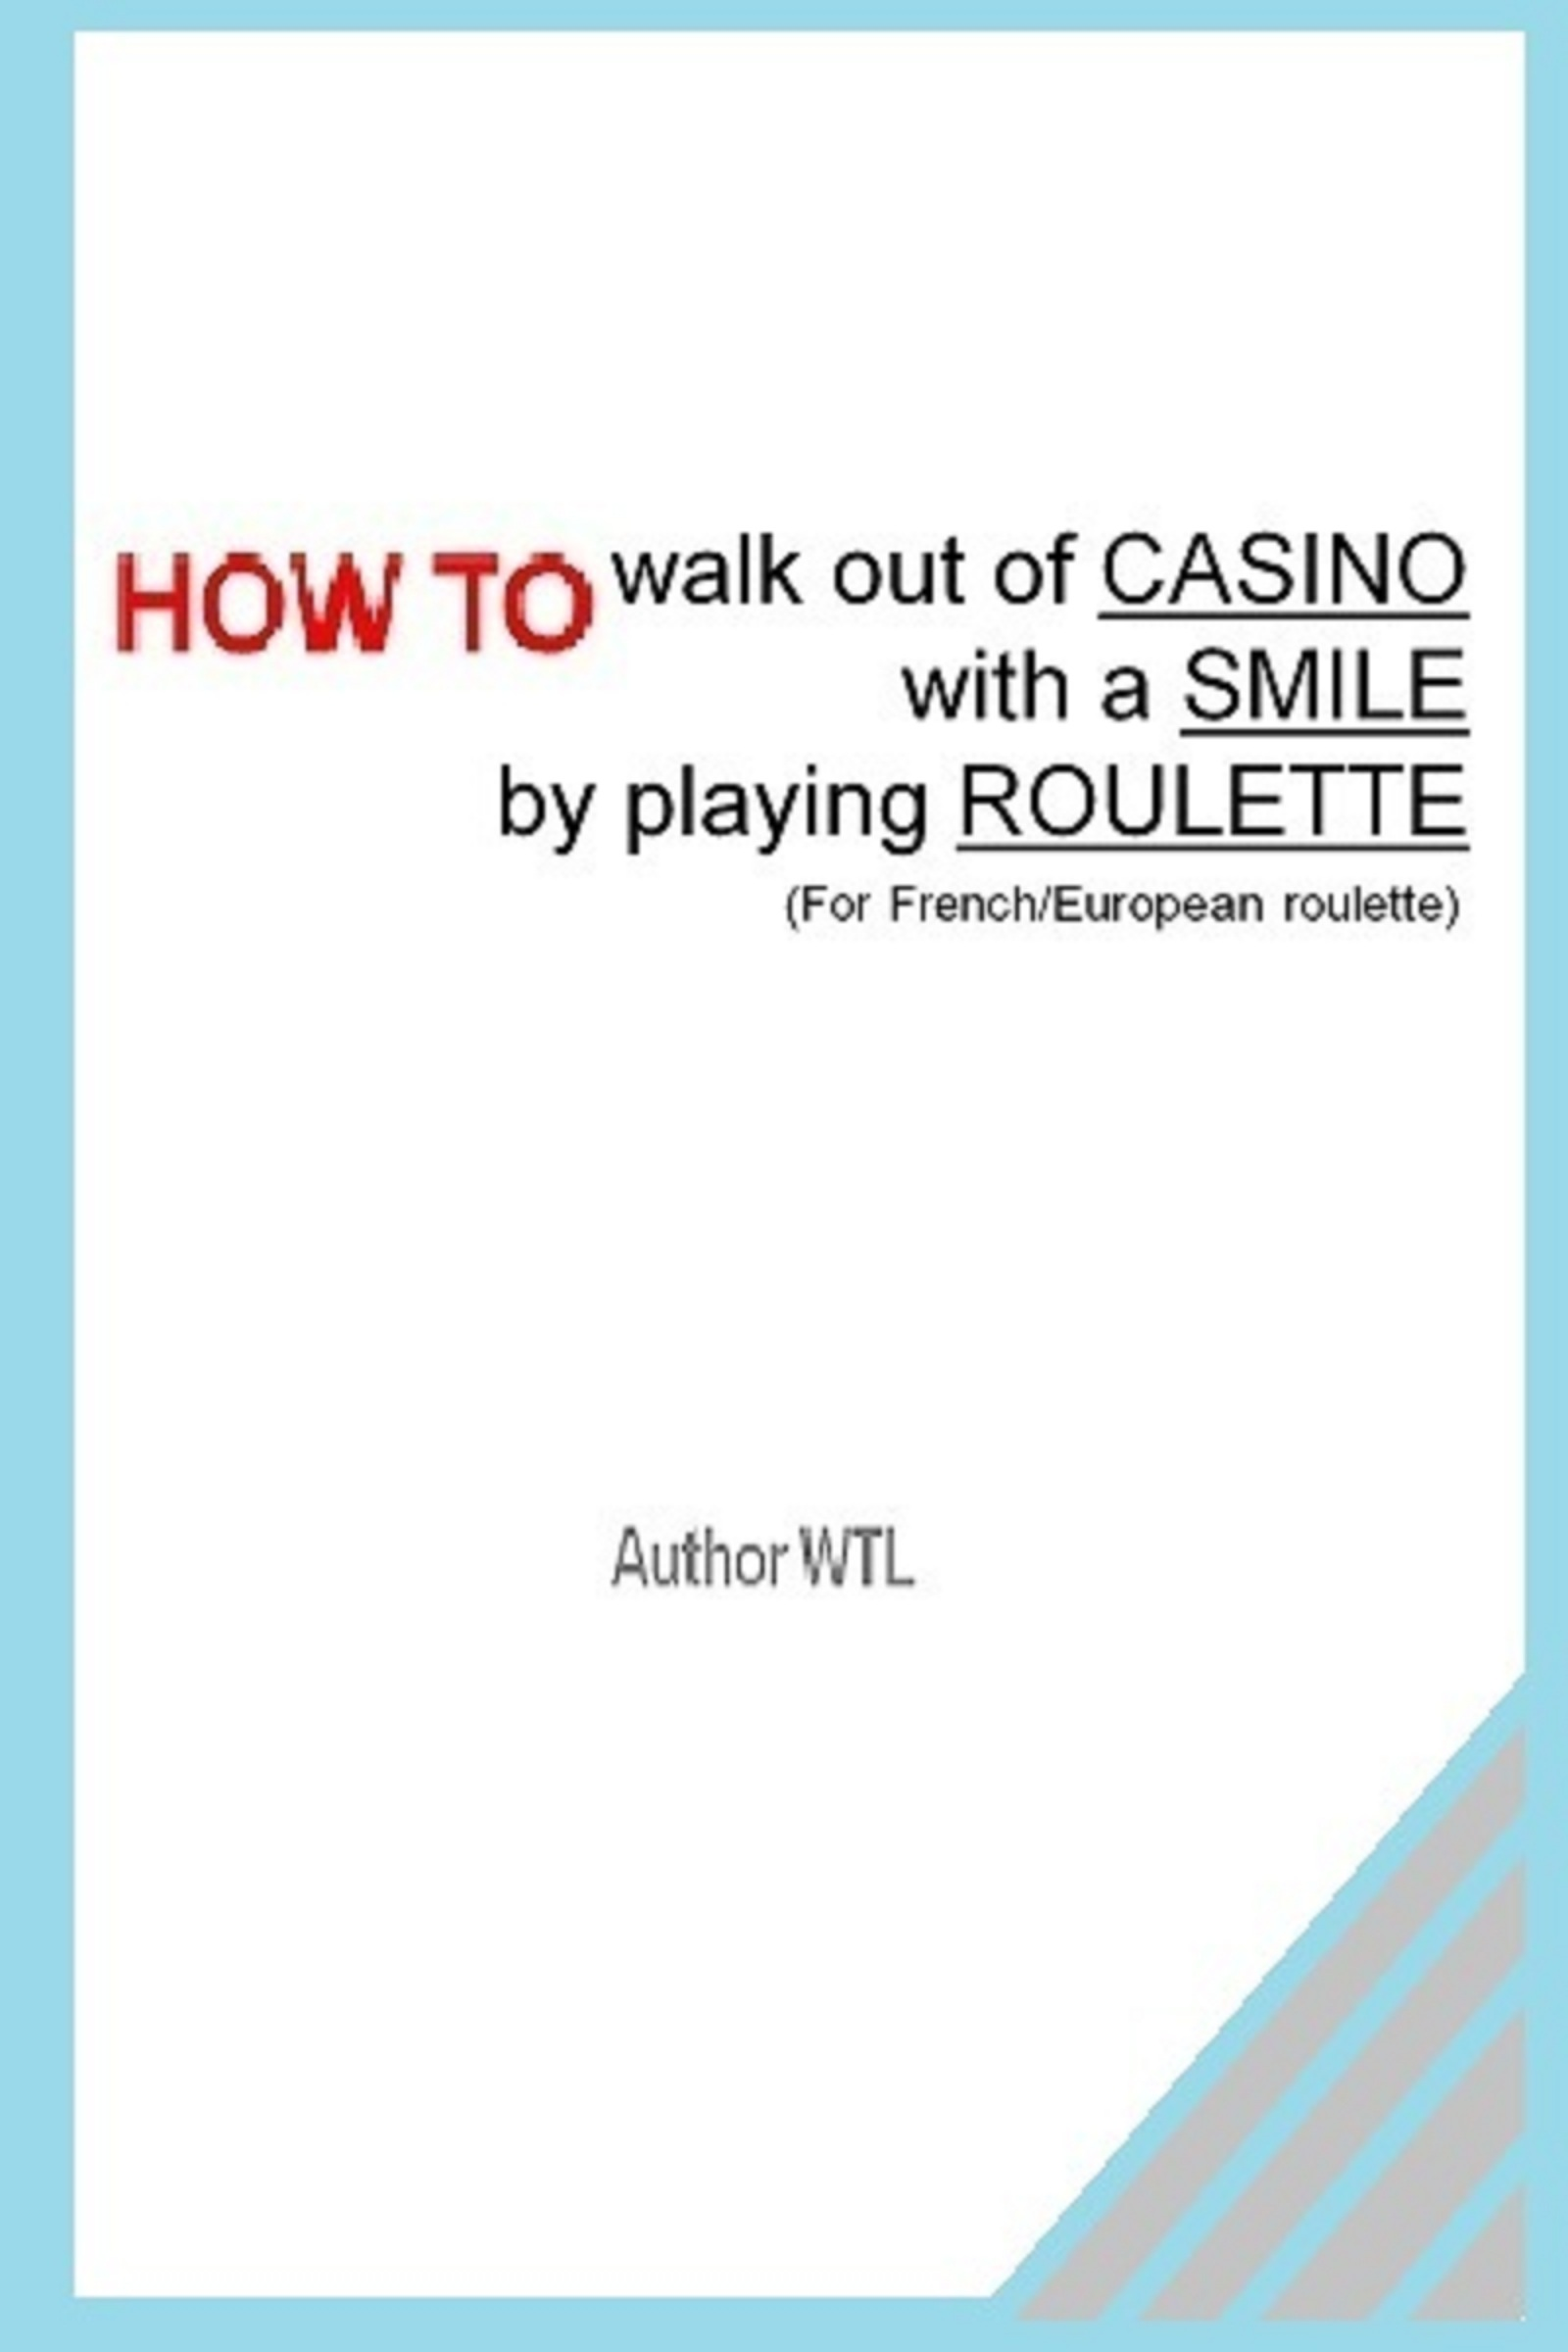 How To Walk Out Of The Casino With A Smile Playing Roulette.